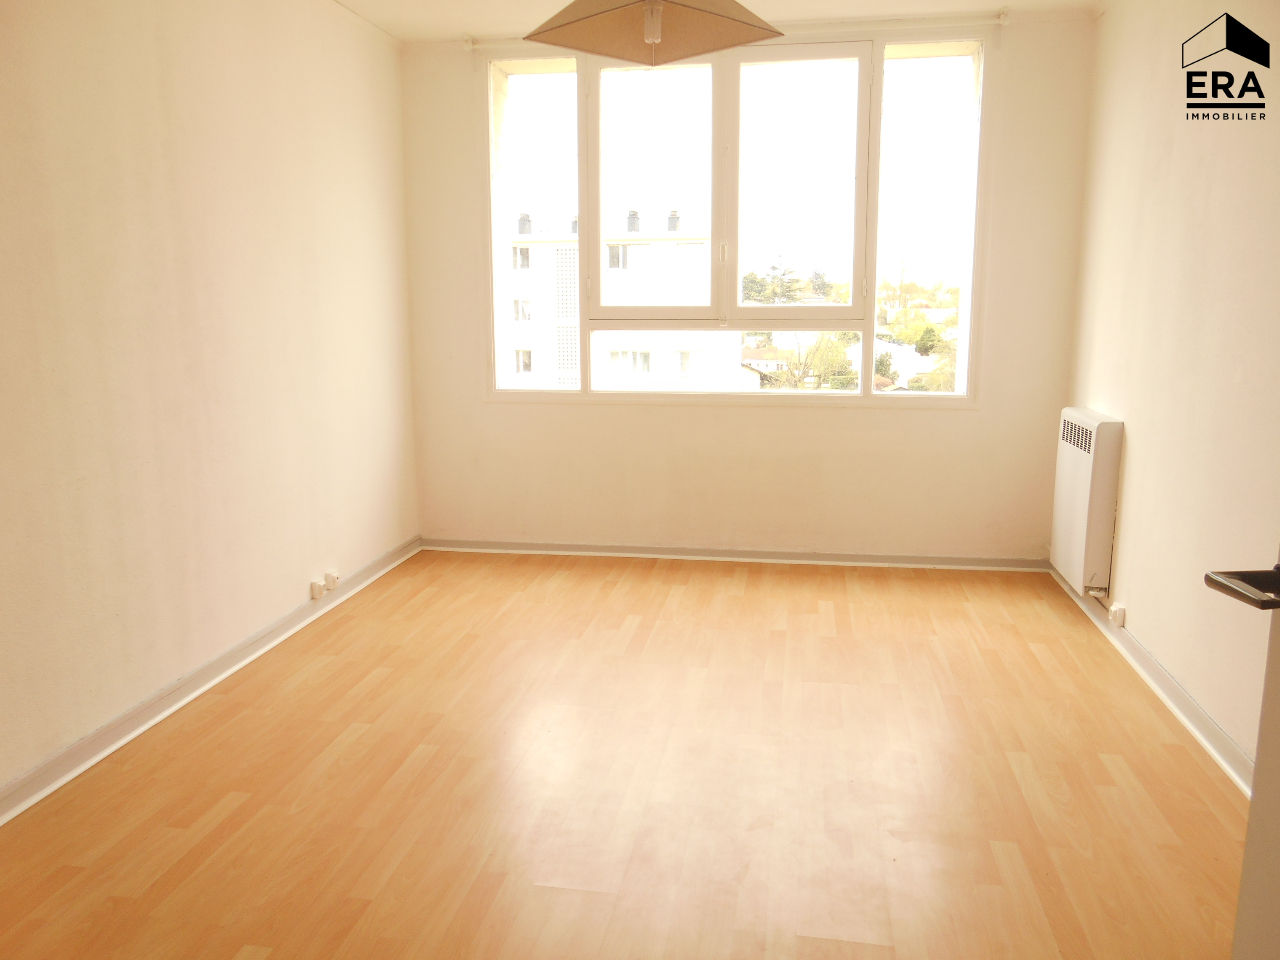 Achat Appartement T2 Mérignac ,cave place de parking